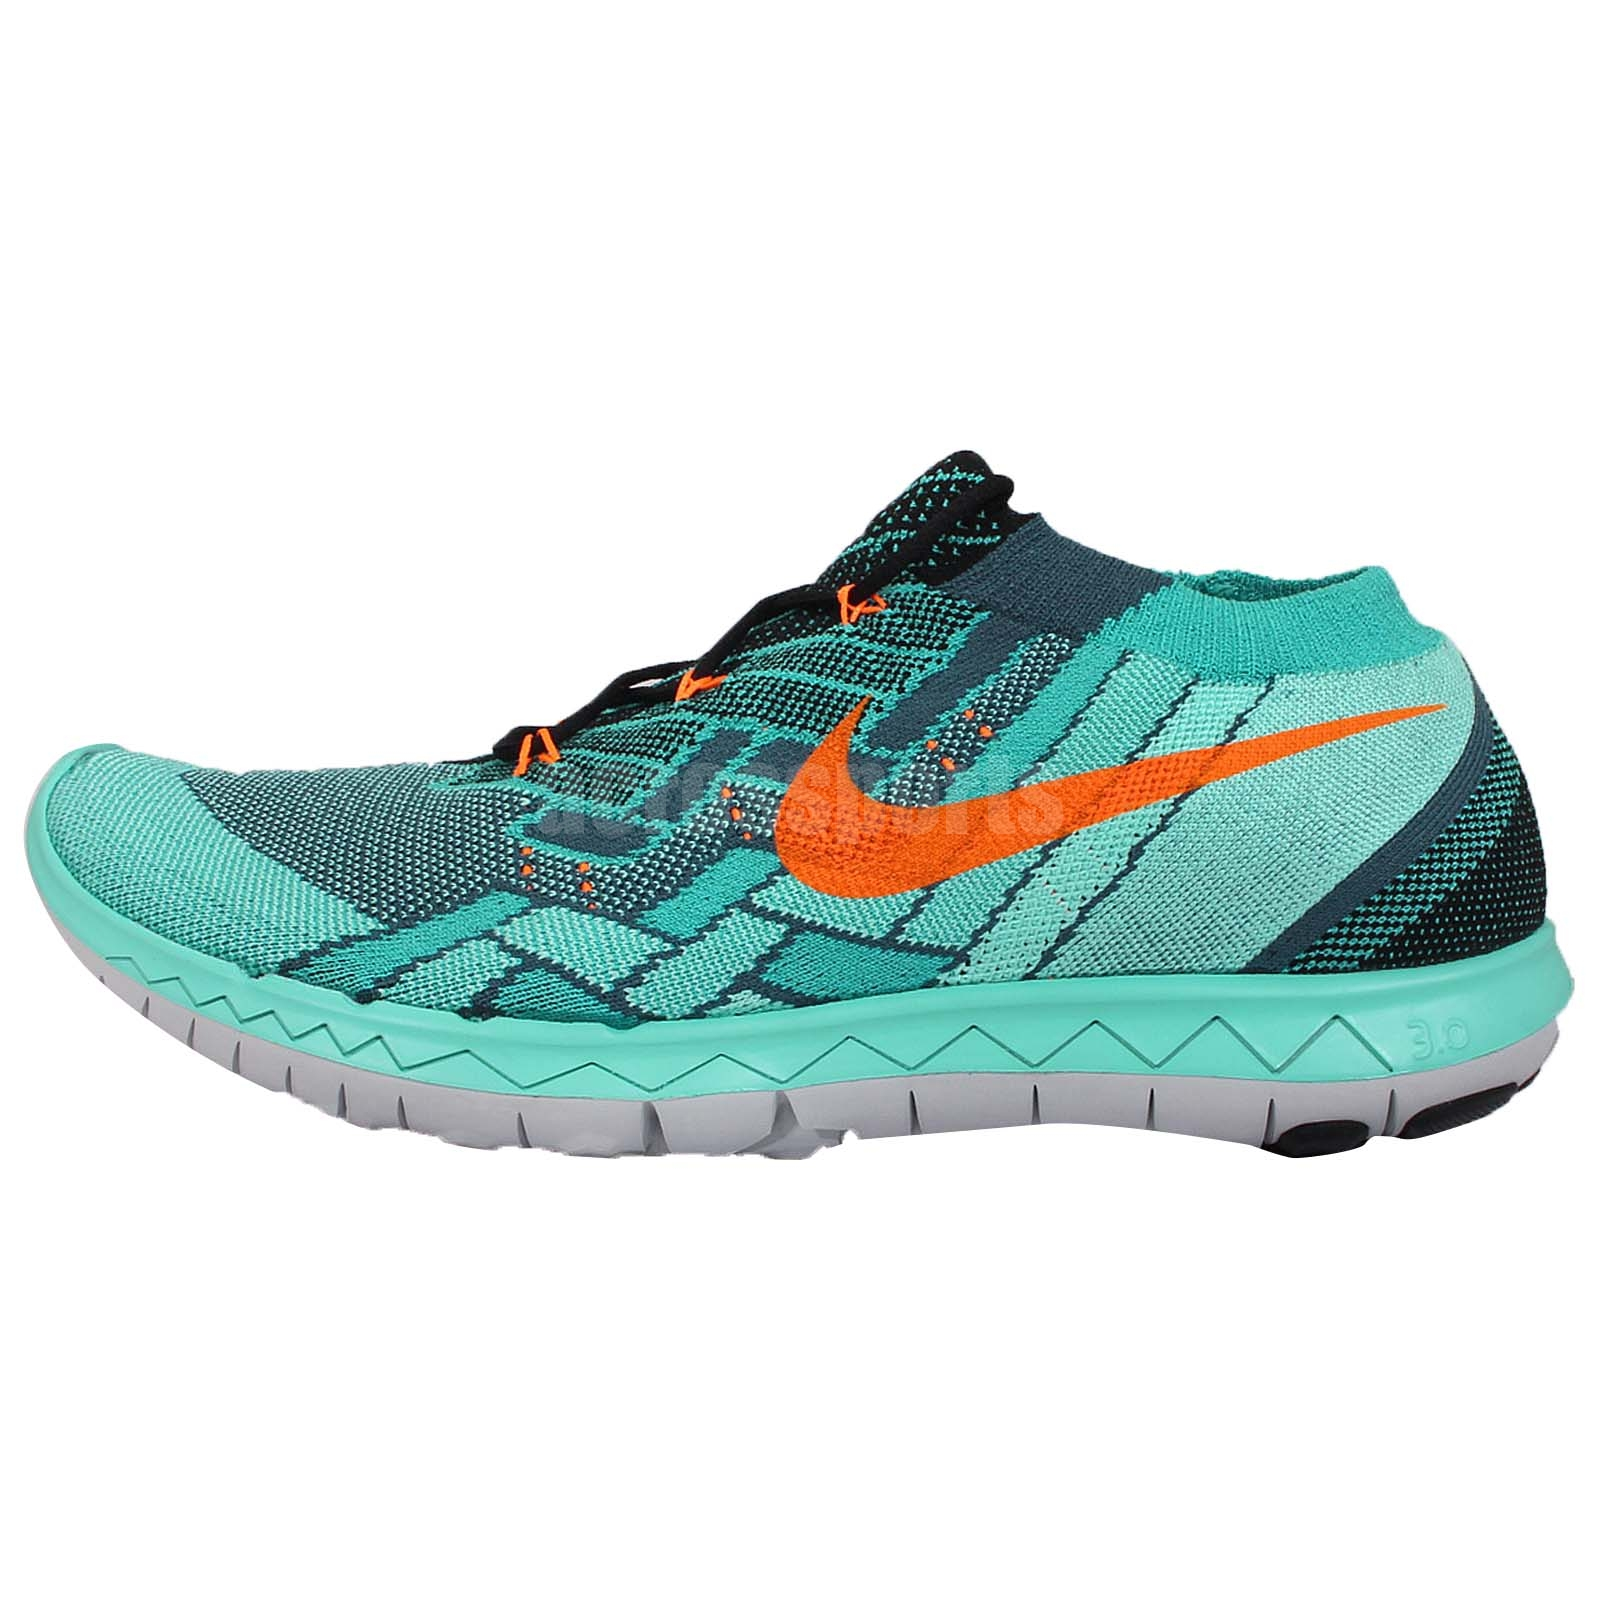 Nike Free Breathable Running Shoes | SportsShoes.com